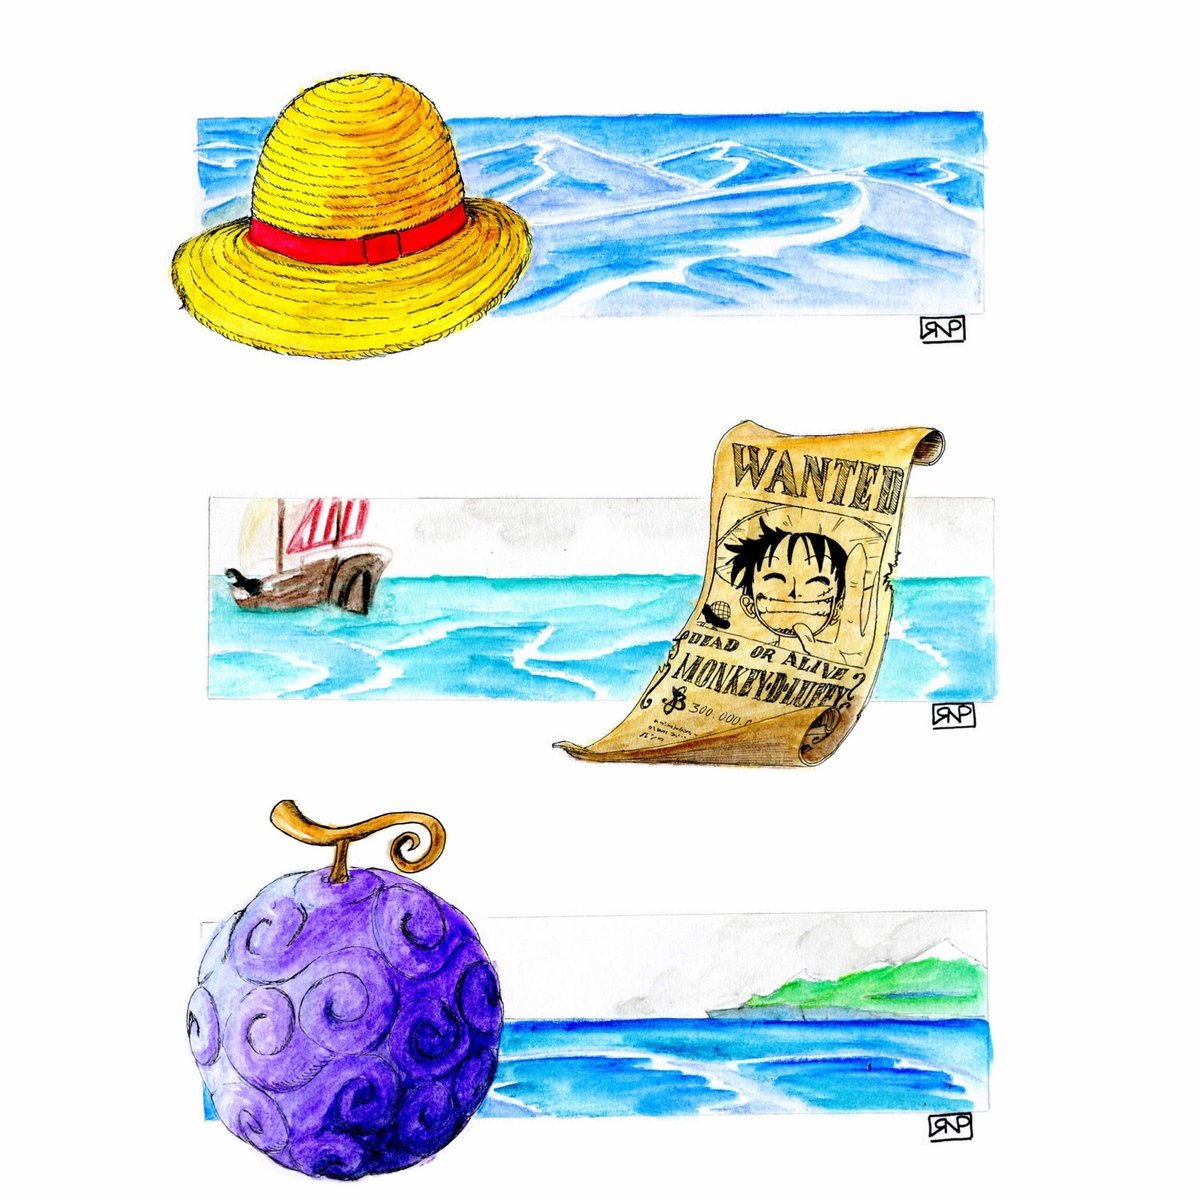 🏴☠️ One Piece Collection #onepiece #luffy #onepiecefans #zoro #onepieceworld #ilustracion #pirates #onepiecefan #strawhat #wanted #design #illustration  #fineart #handmade #fanart #dibuix #dibujo #acuarela #watercolor #tinta #ink #drawing #sketch #arte #art #draw #artist